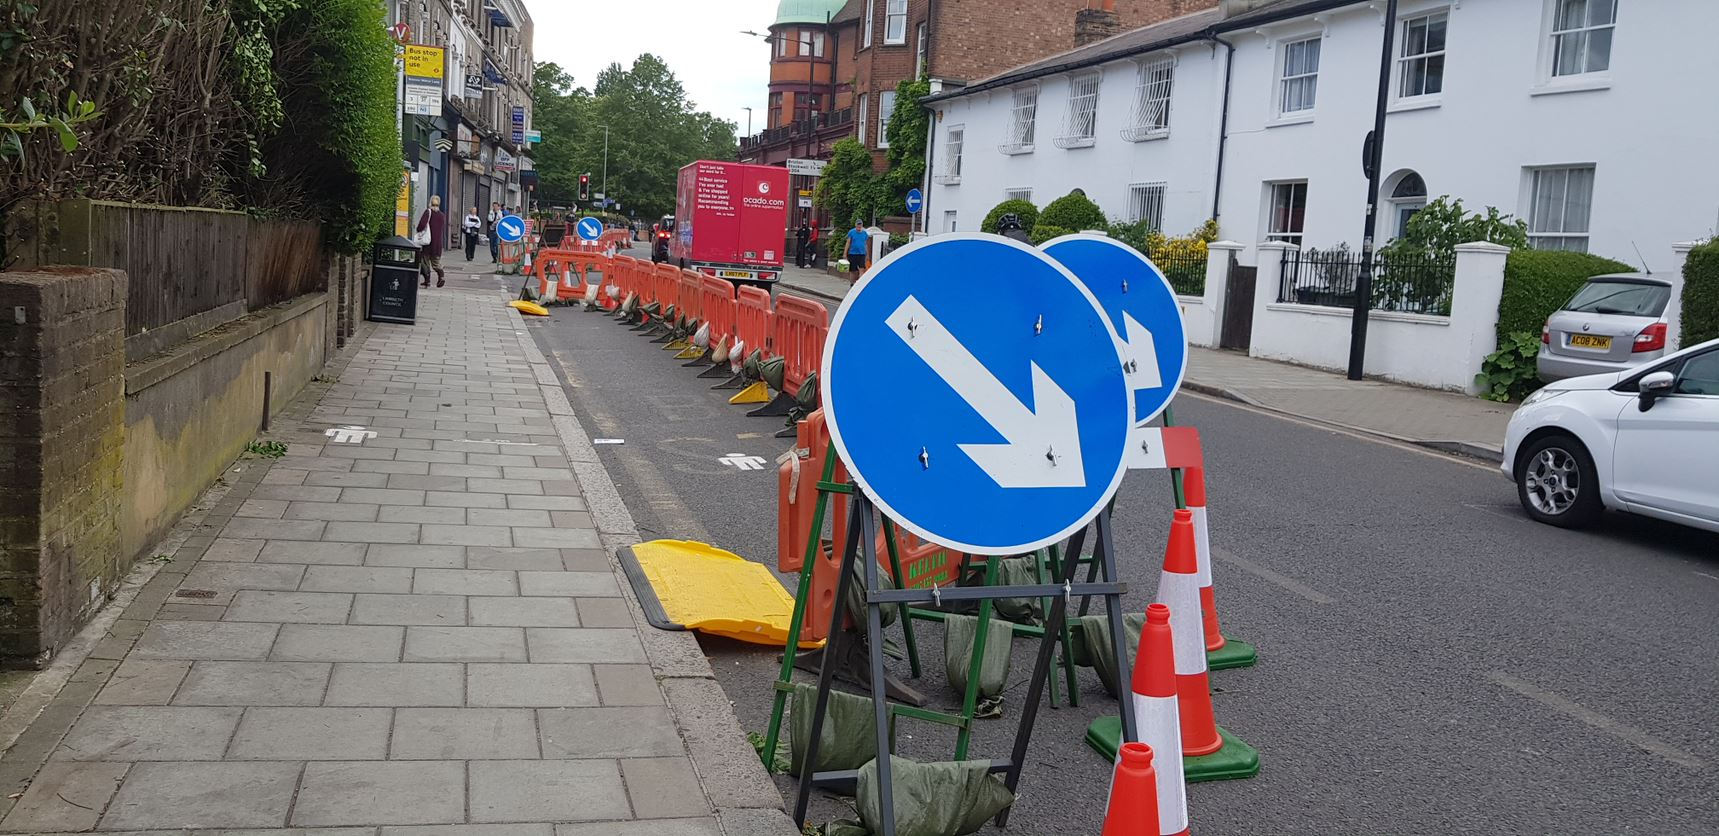 Image of a pavement that has been extended into the road with cones separating the two areas.